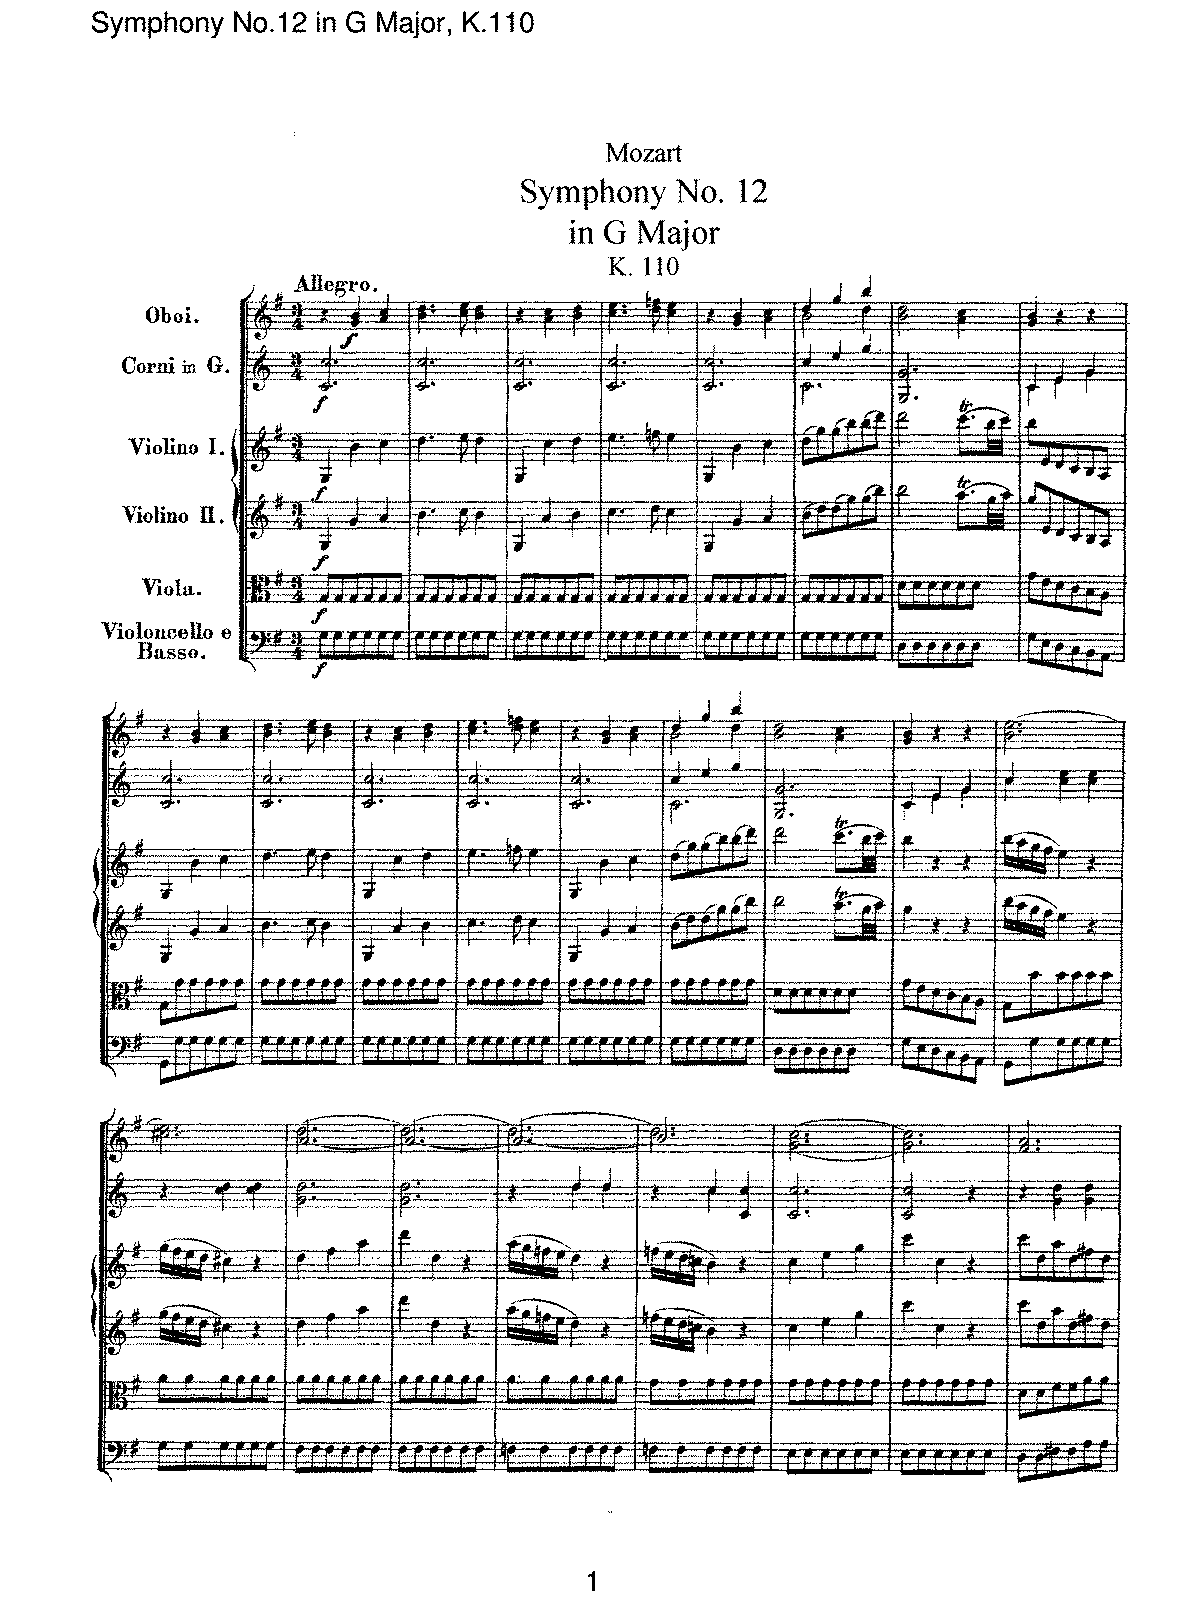 Mozart - Symphony No 12 in G Major, K110.pdf